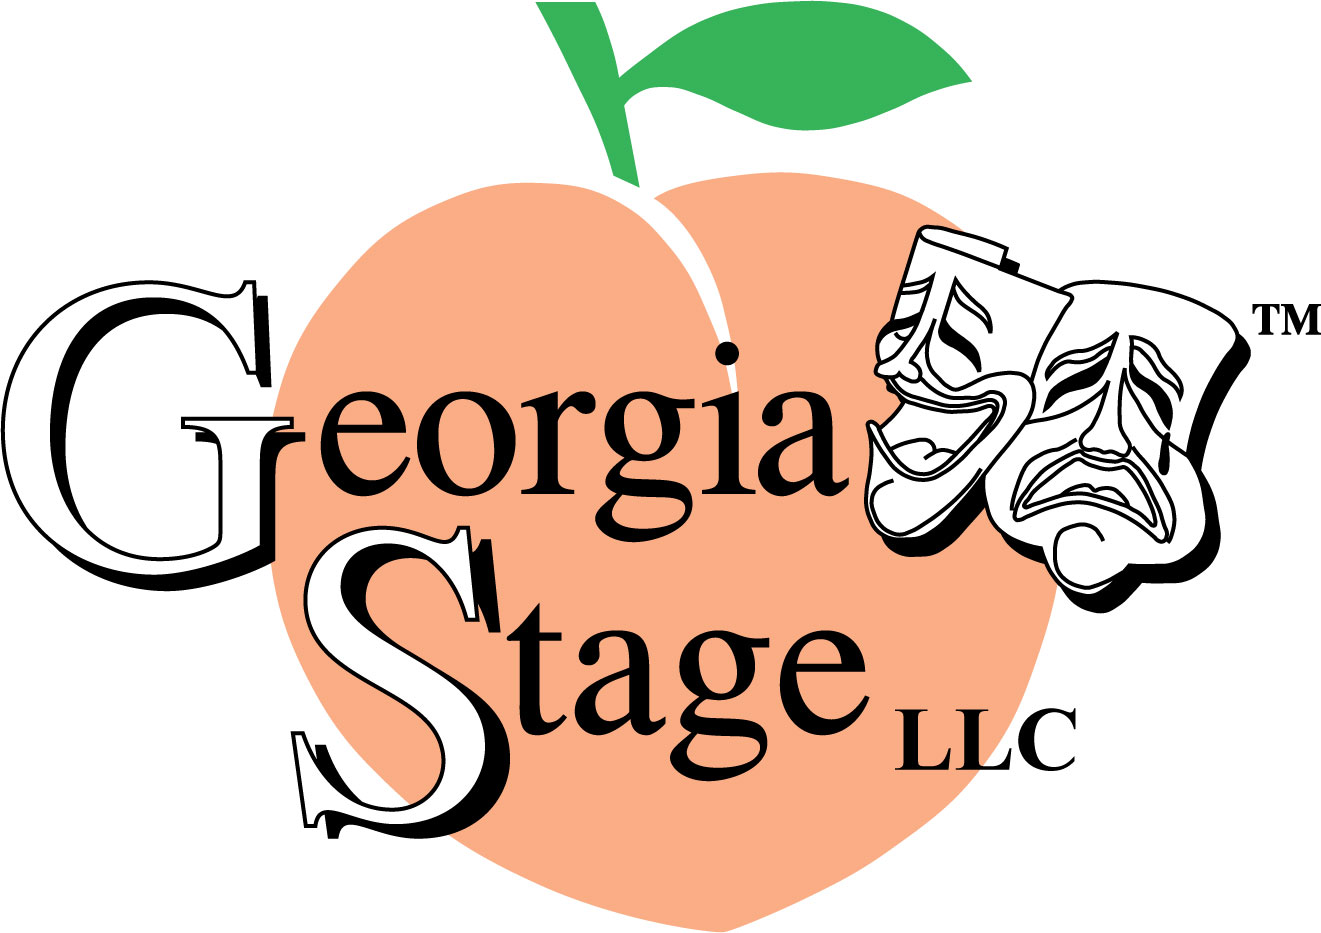 Georgia Stage LLC